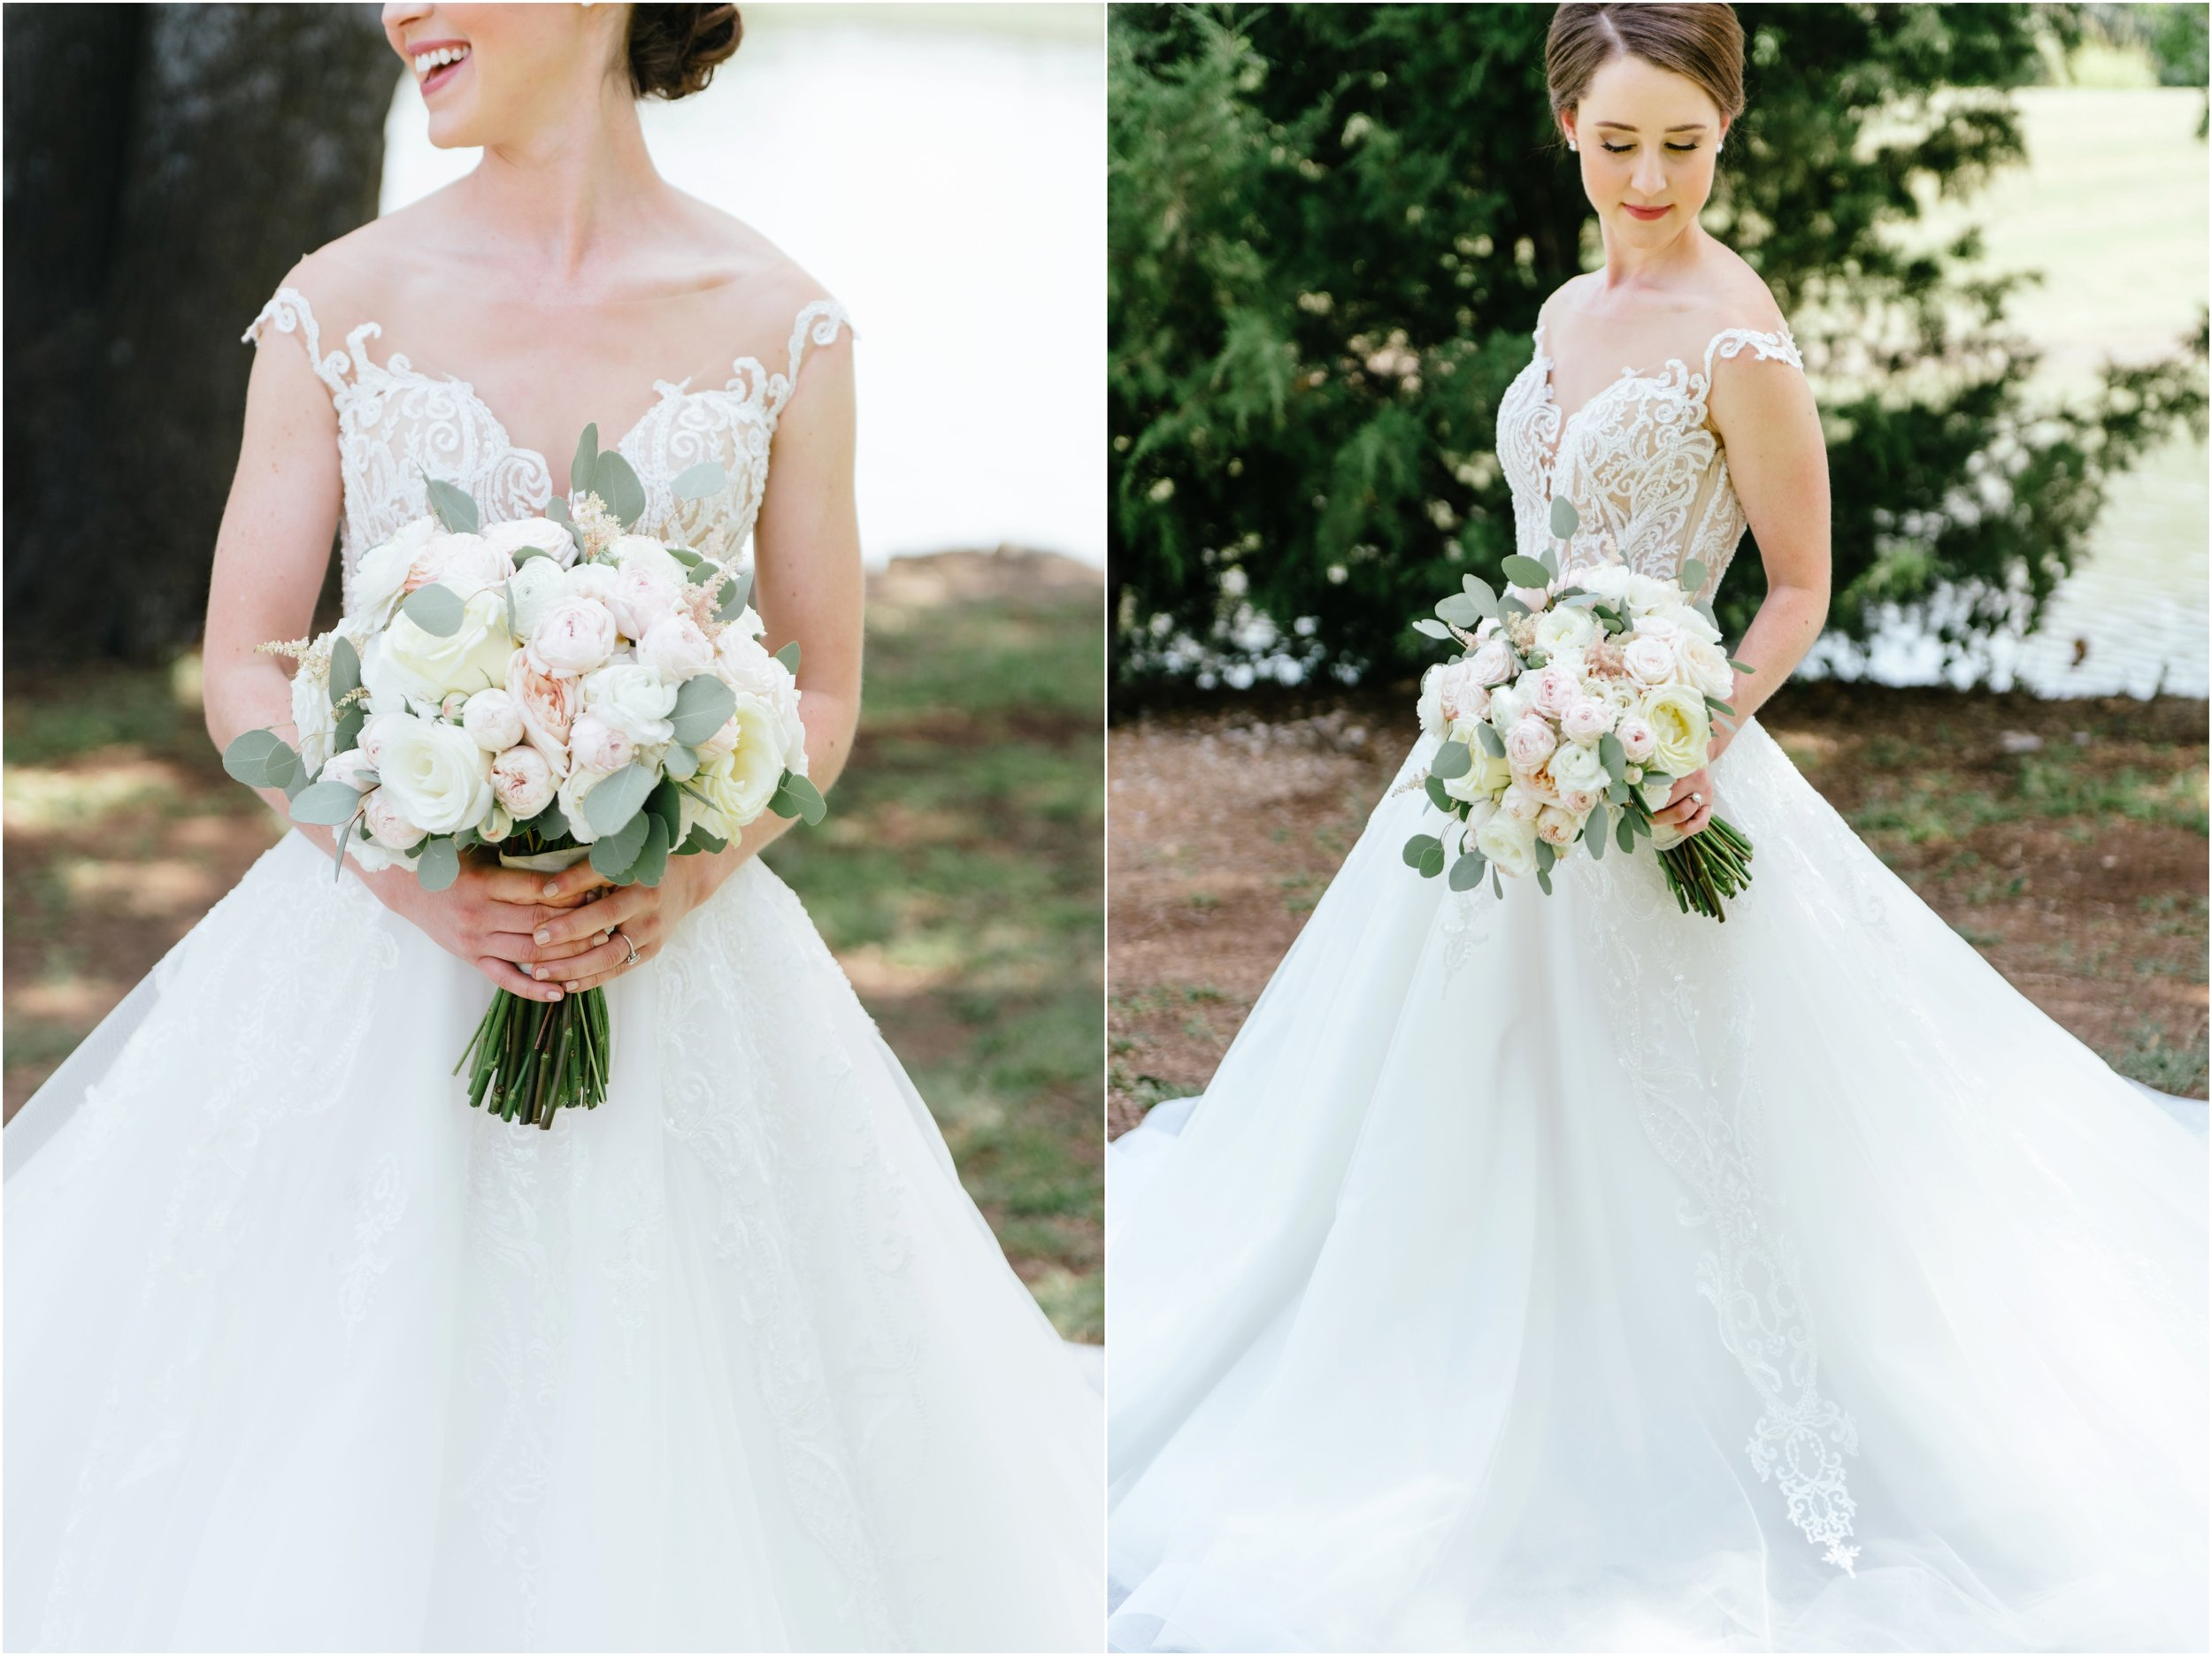 dallasweddingphotographer_fortworthweddingphotographer_texasweddingphotographer_mattandjulieweddings_whiterocklakewedding_KayleighClay_0012.jpg